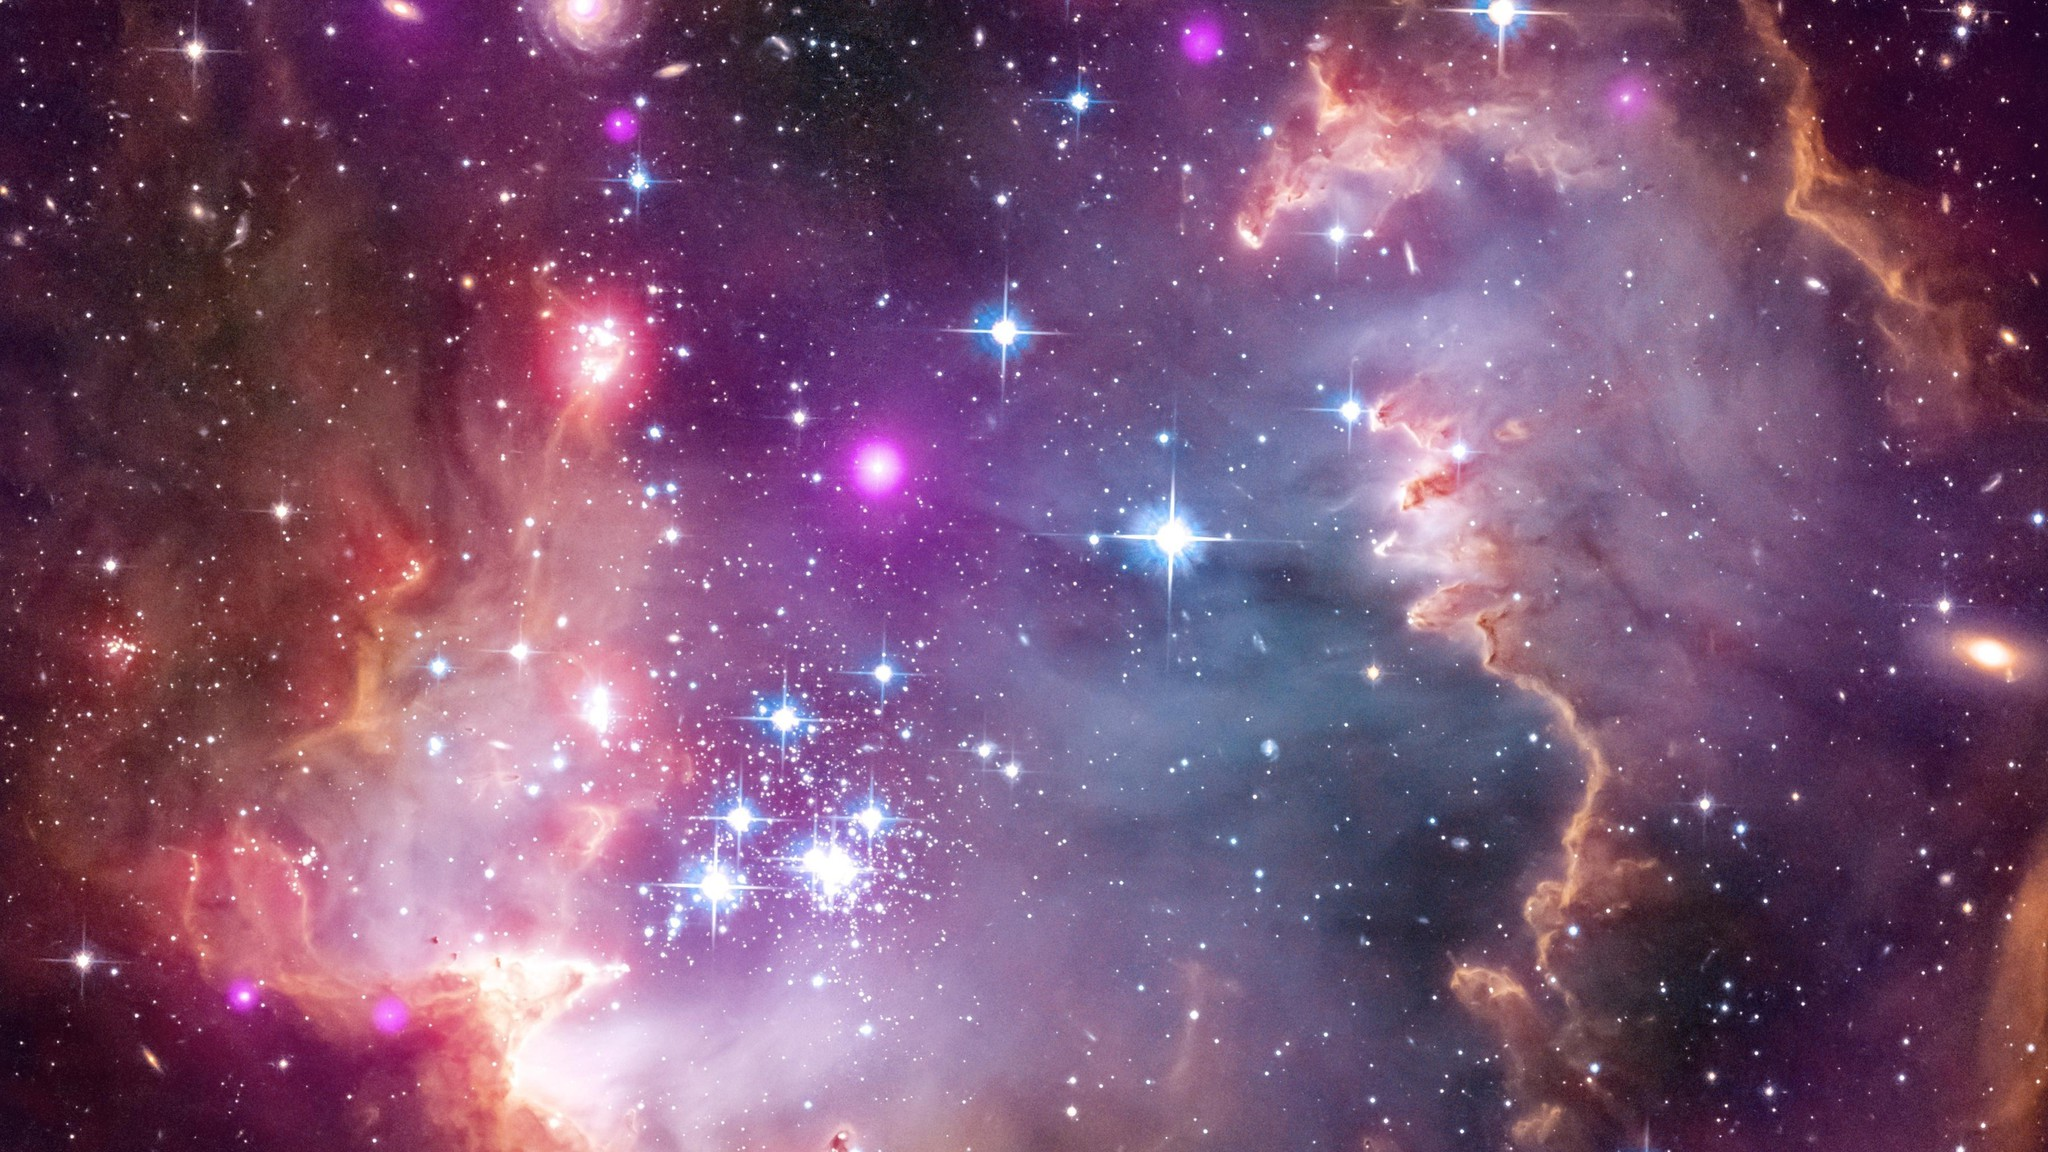 Outer space wallpaper 10740 pc en for Outer space design wallpaper